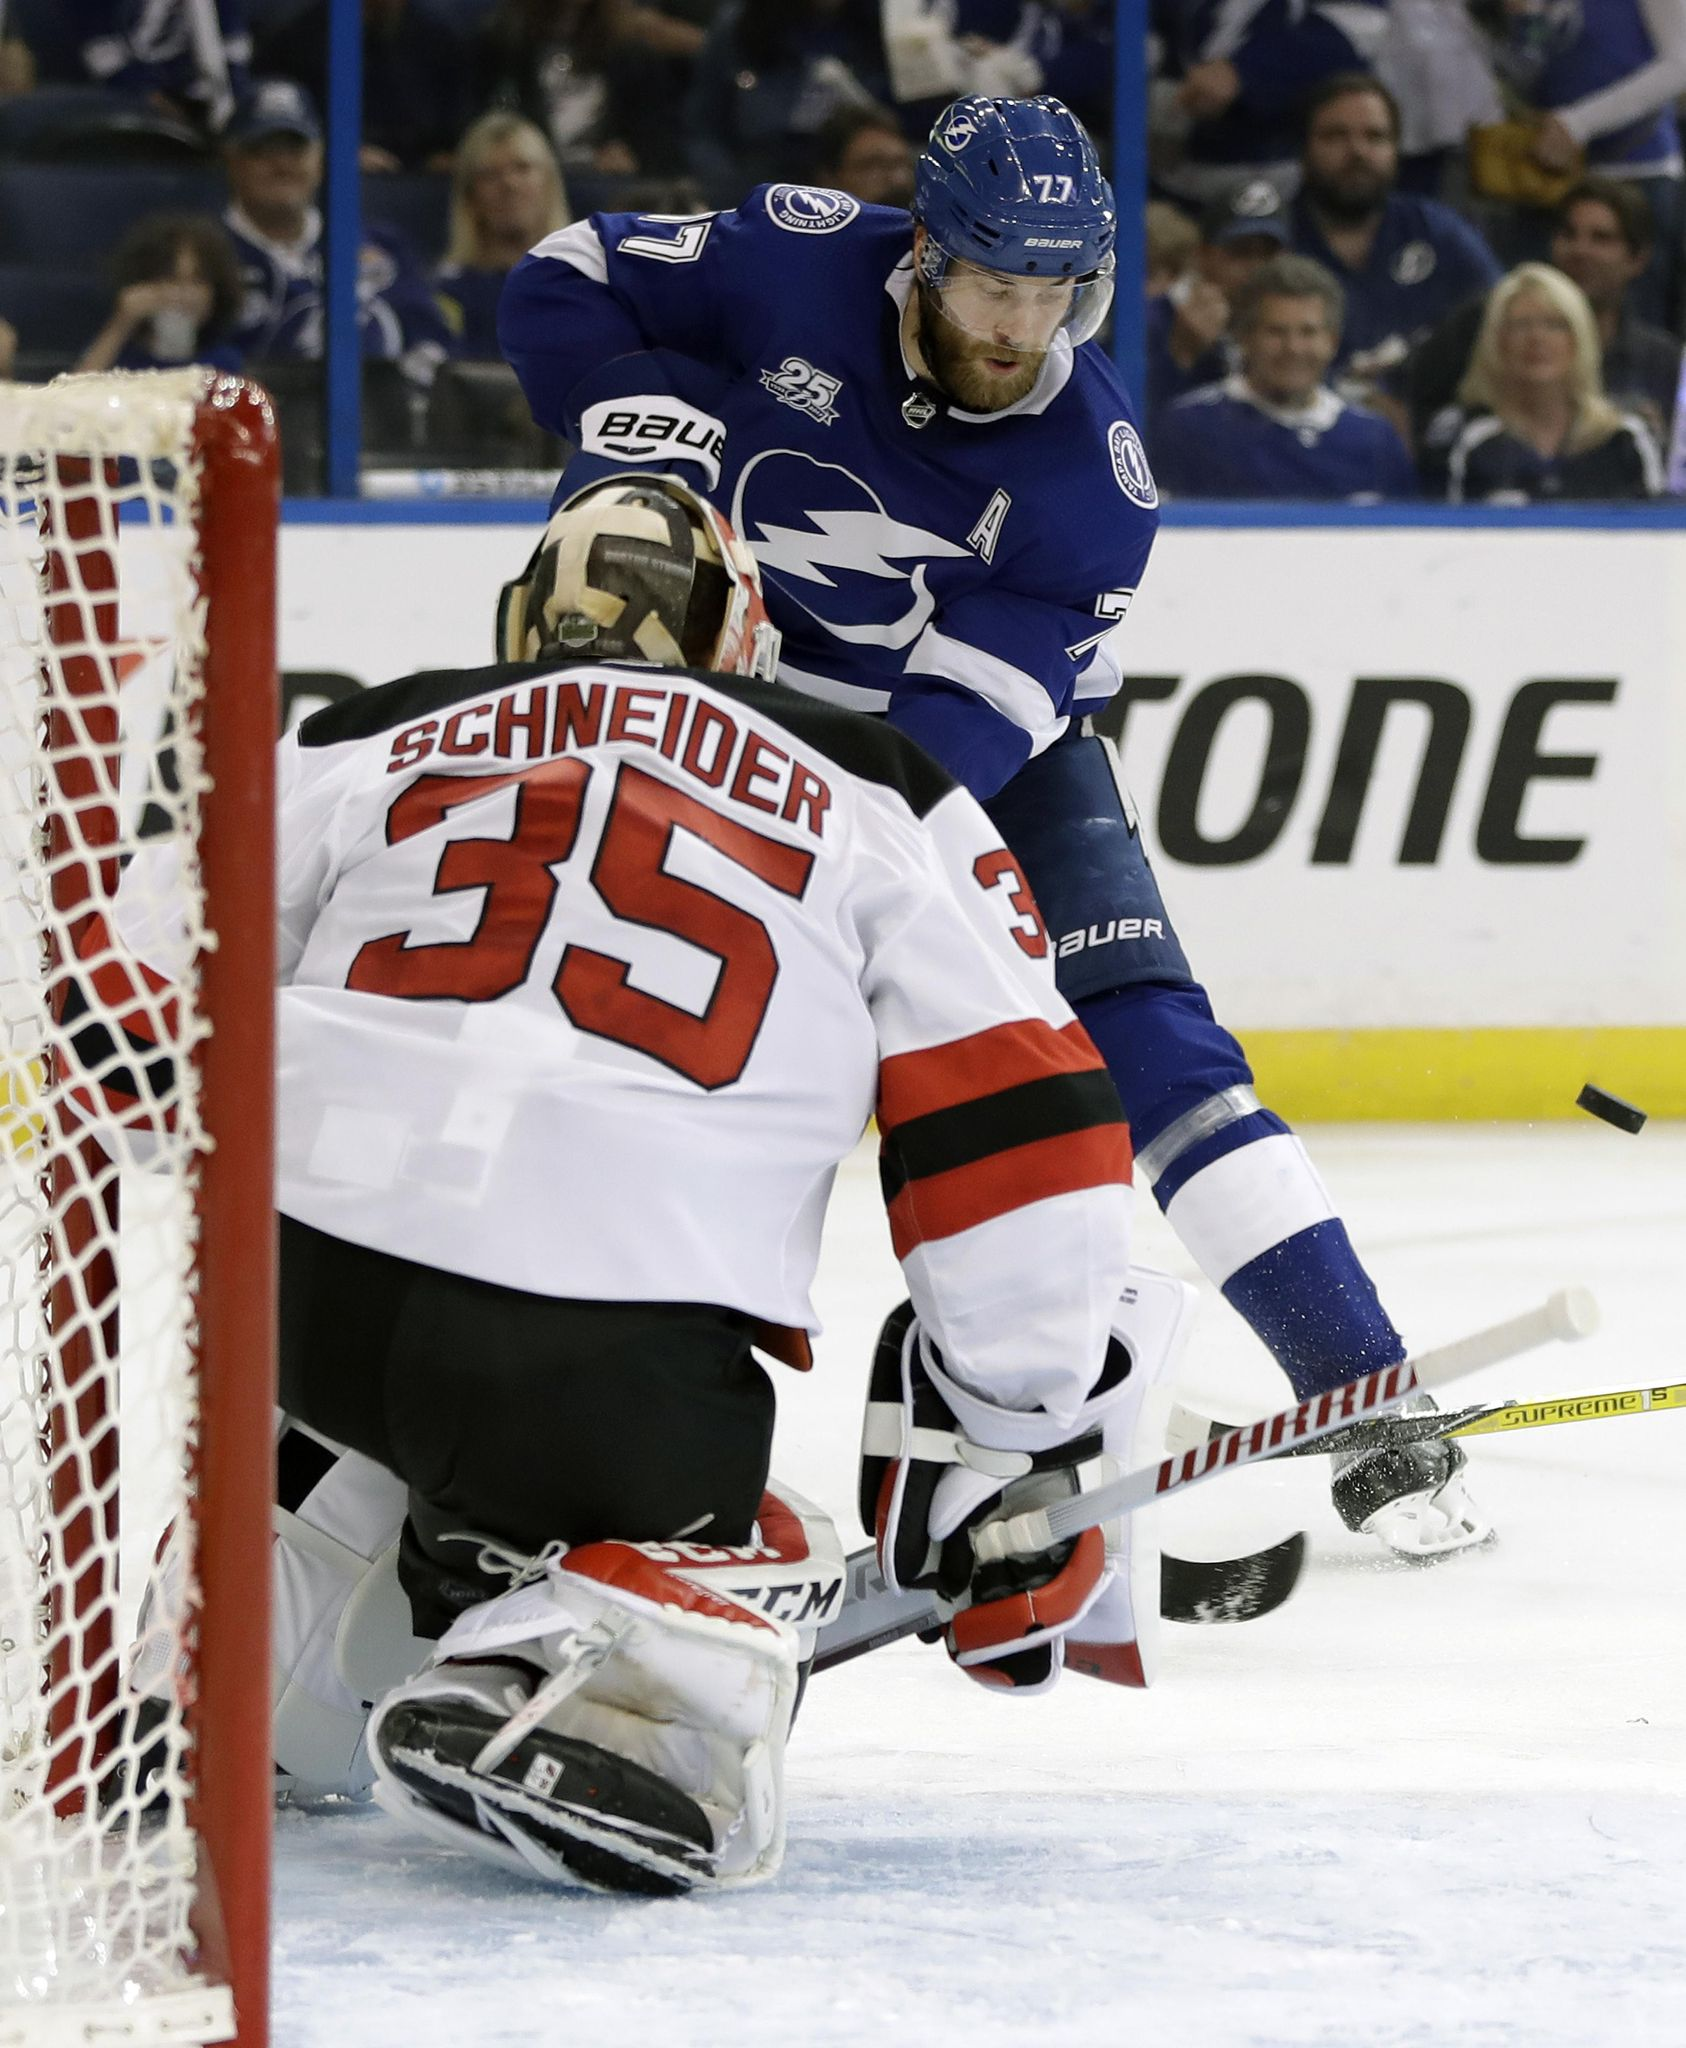 Devils_lightning_hockey_02389_s1686x2048